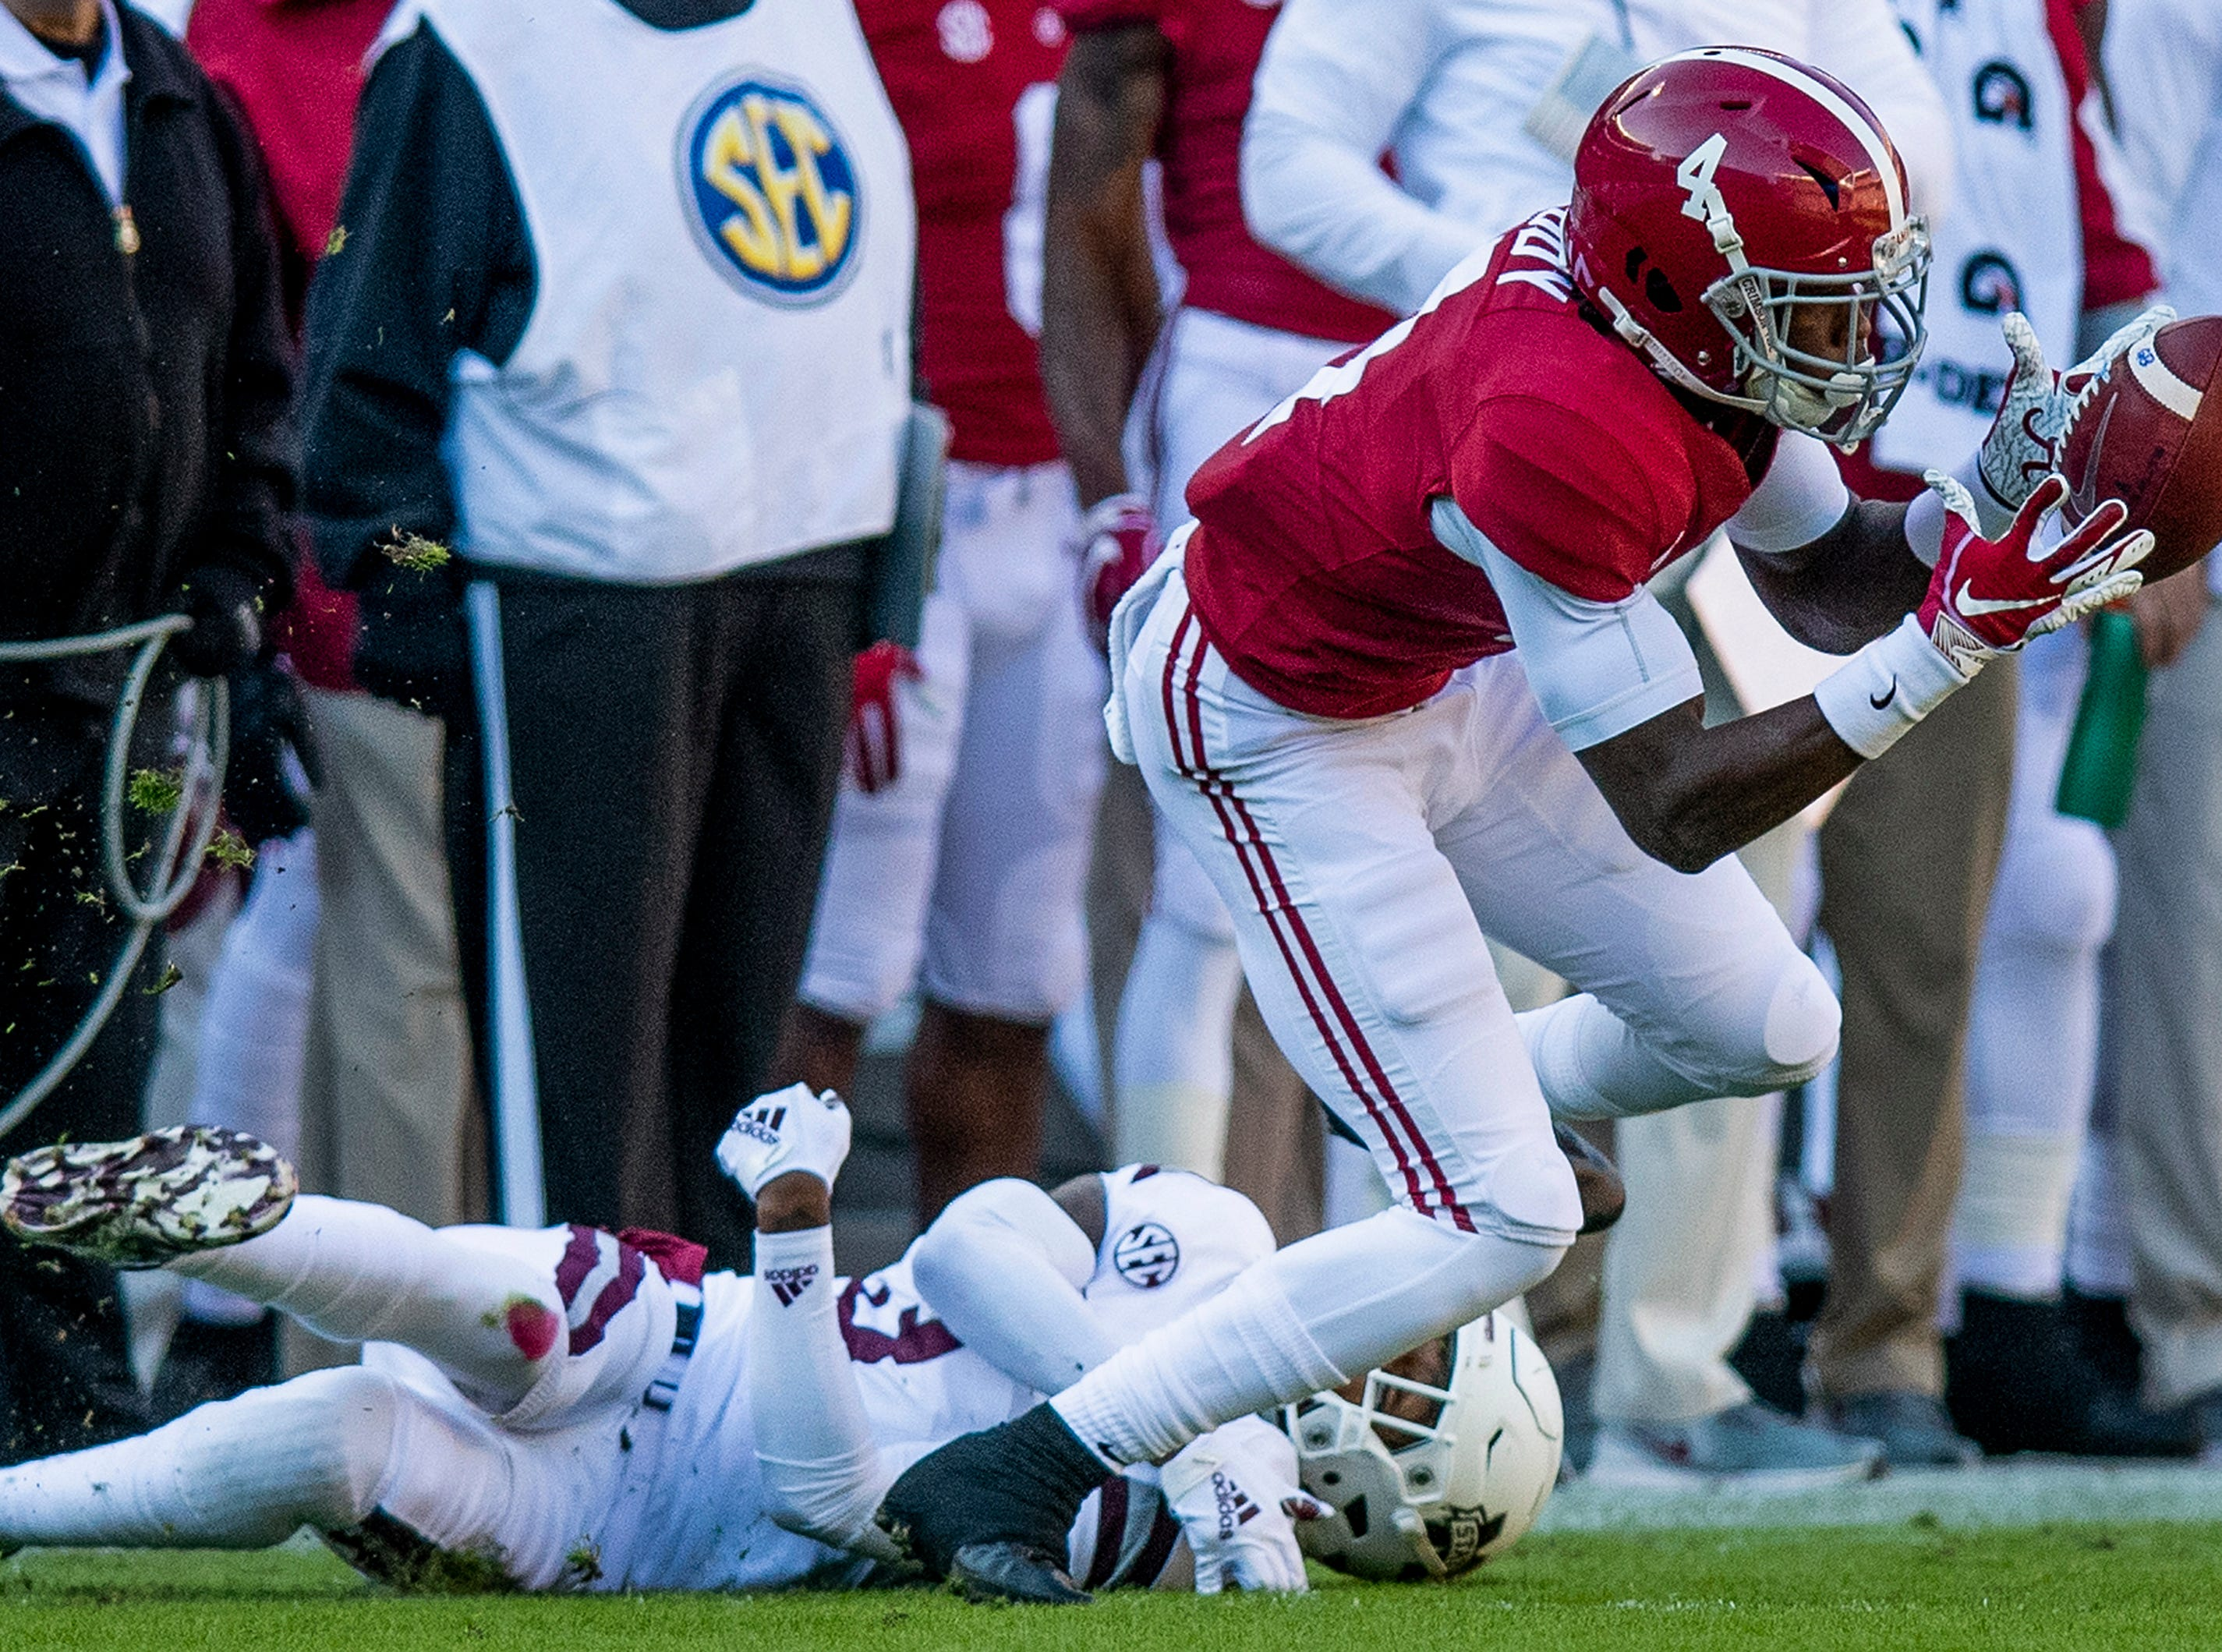 Alabama wide receiver Jerry Jeudy (4) catches a pass against Mississippi State University in first half action at Bryant Denny Stadium in Tuscaloosa, Ala., on Saturday November 9, 2018.